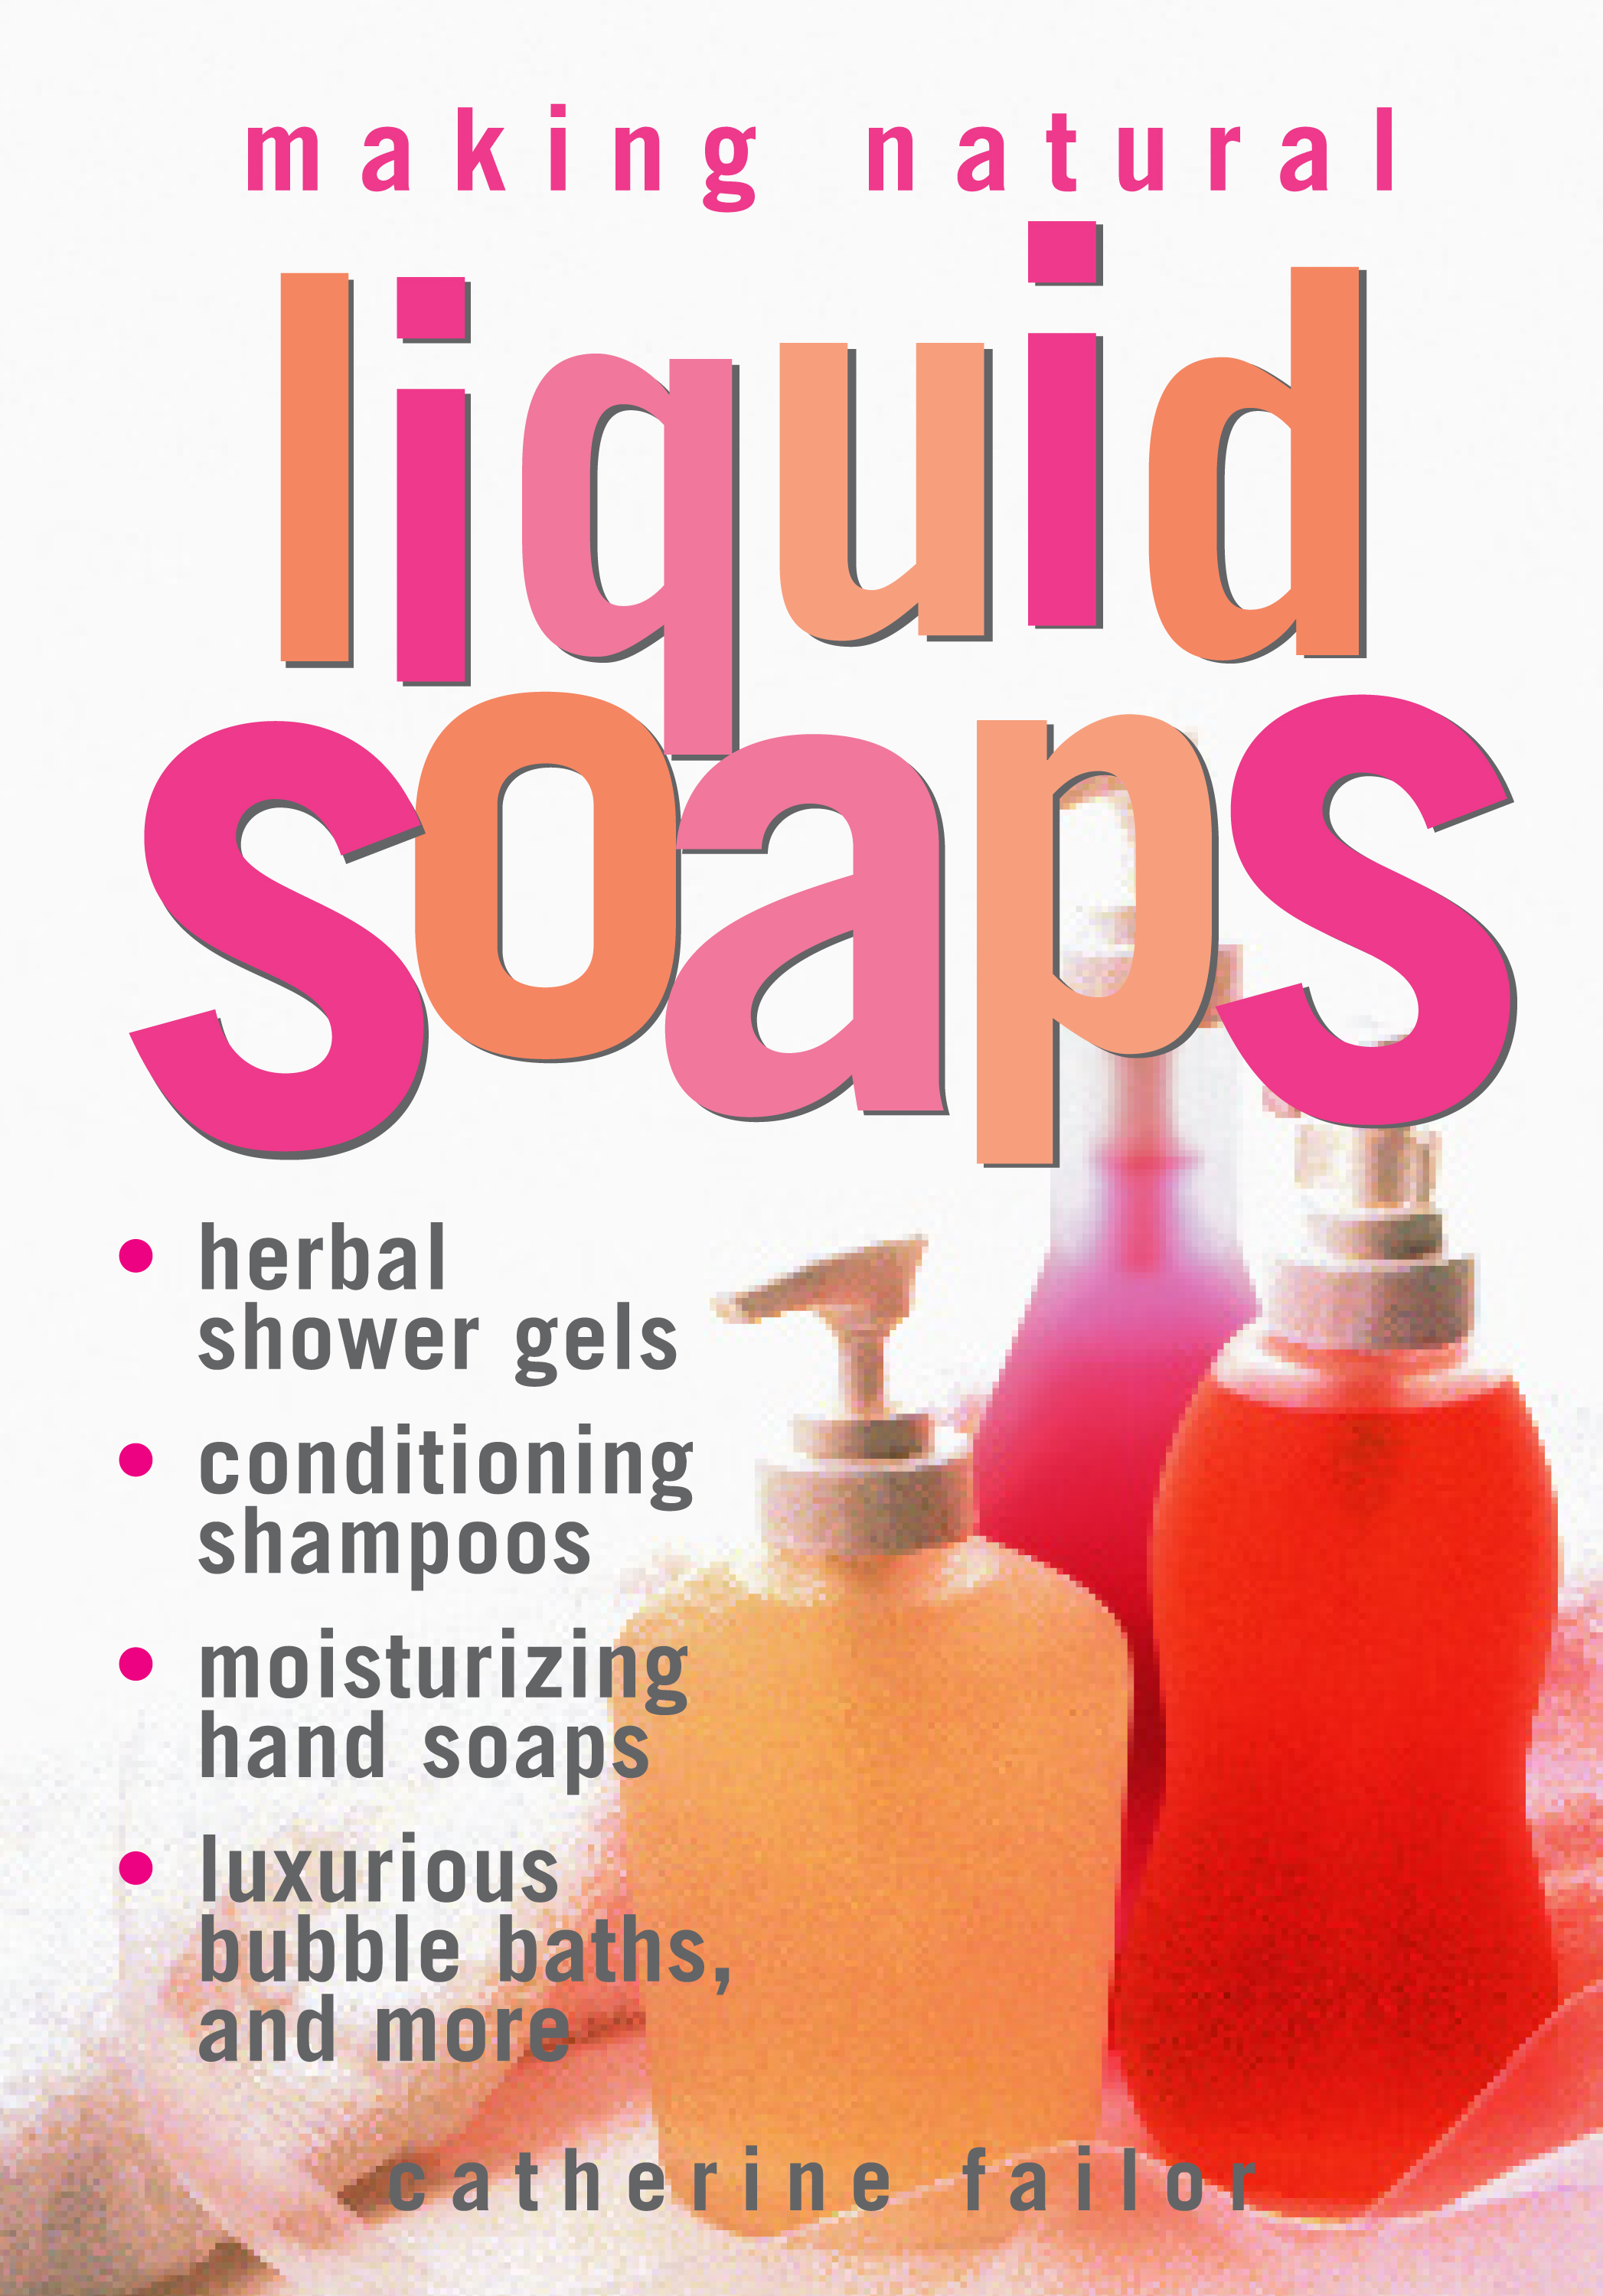 Making Natural Liquid Soaps Herbal Shower Gels, Conditioning Shampoos,  Moisturizing Hand Soaps, Luxurious Bubble Baths, and more - Catherine Failor